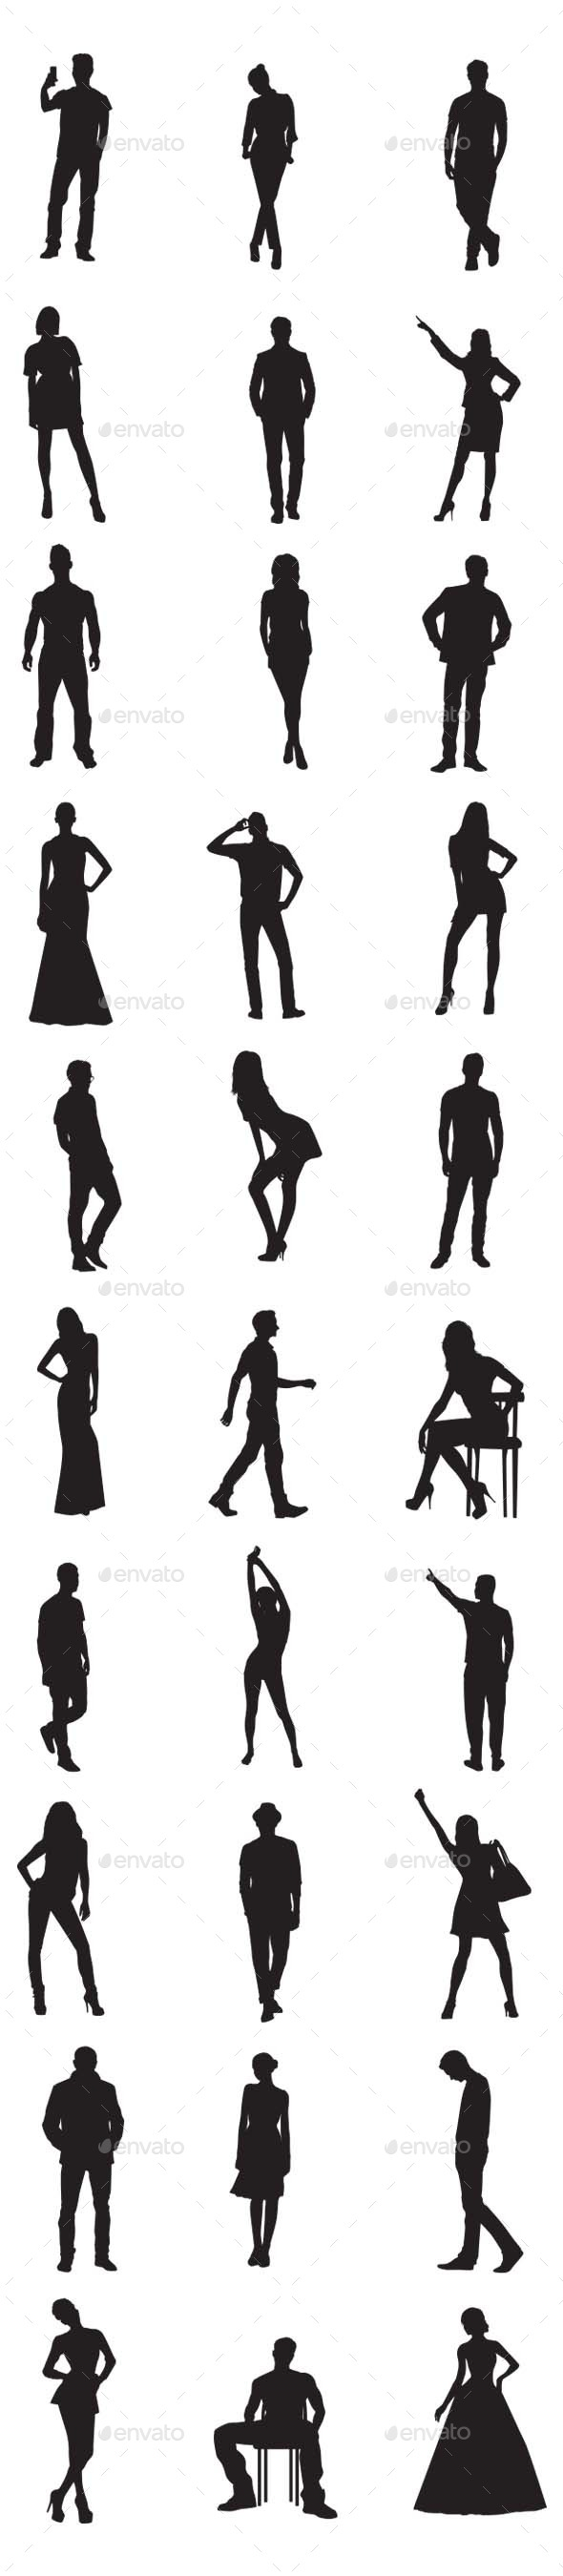 GraphicRiver People Silhouettes 9856465